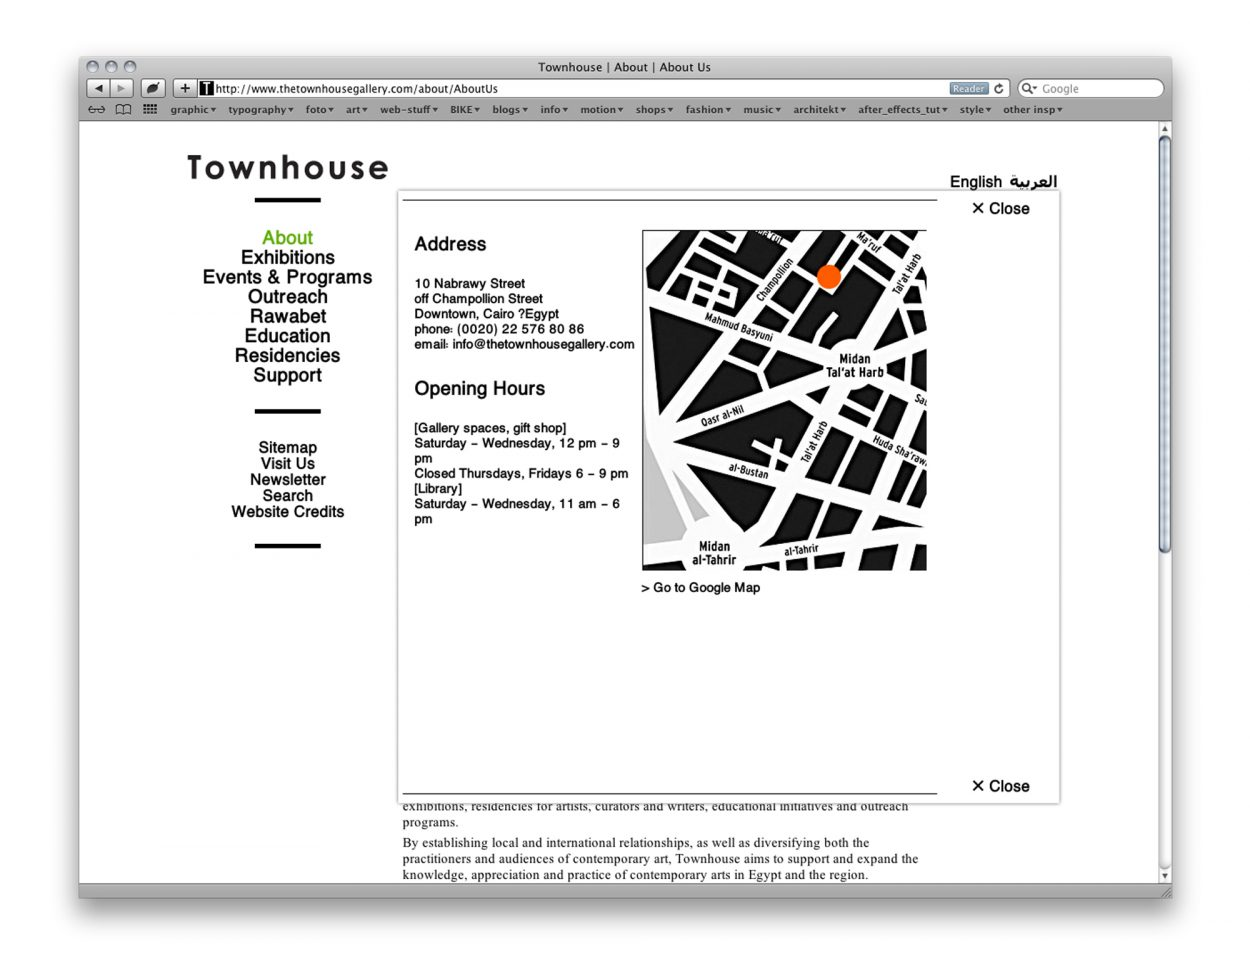 Eps51_Townhouse_04